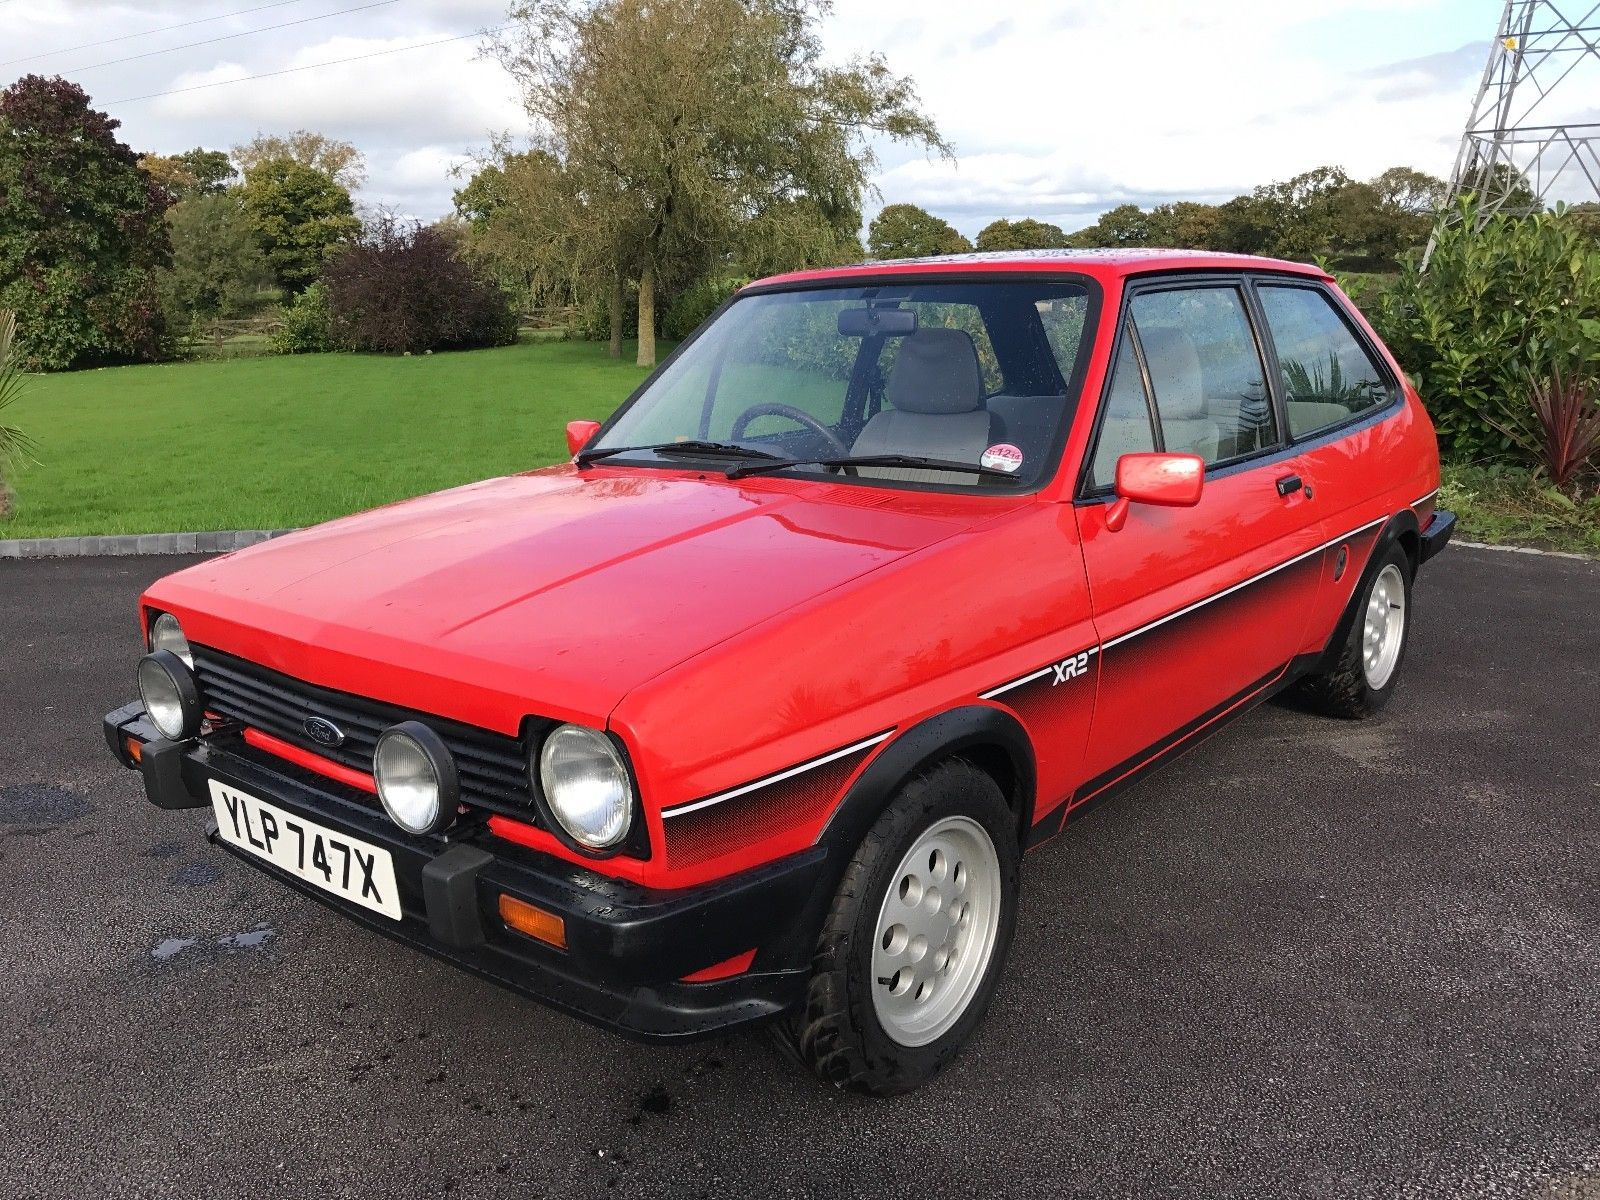 This Ford Fiesta Xr2 Mk1 Sunburst Red Un Molested Example 1982